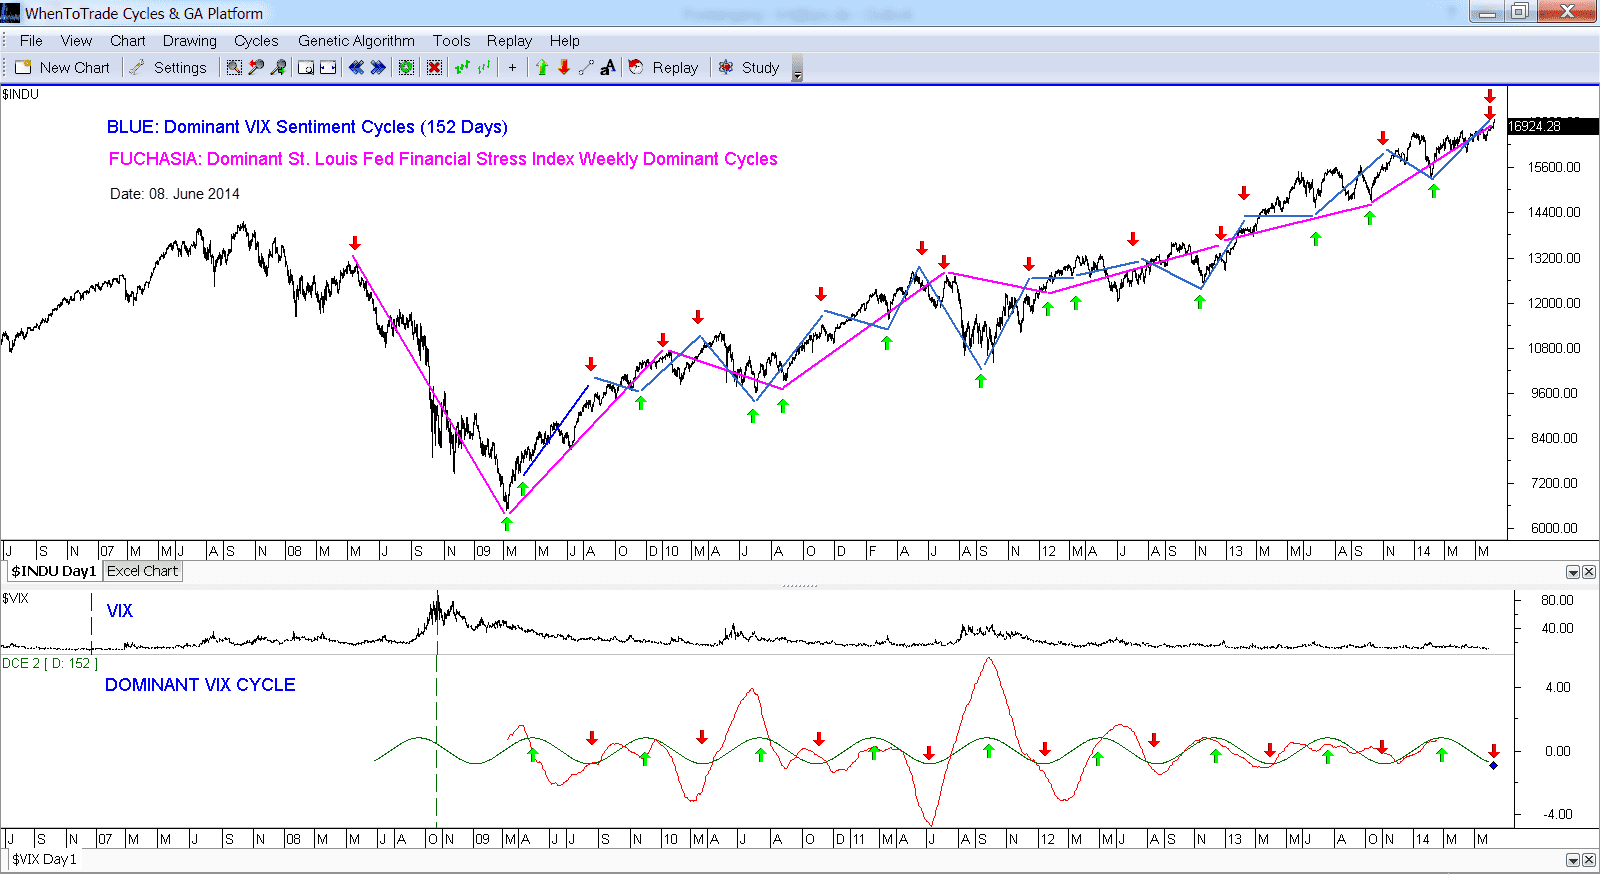 VIX and Financial Stress Index Dominant Cycle View